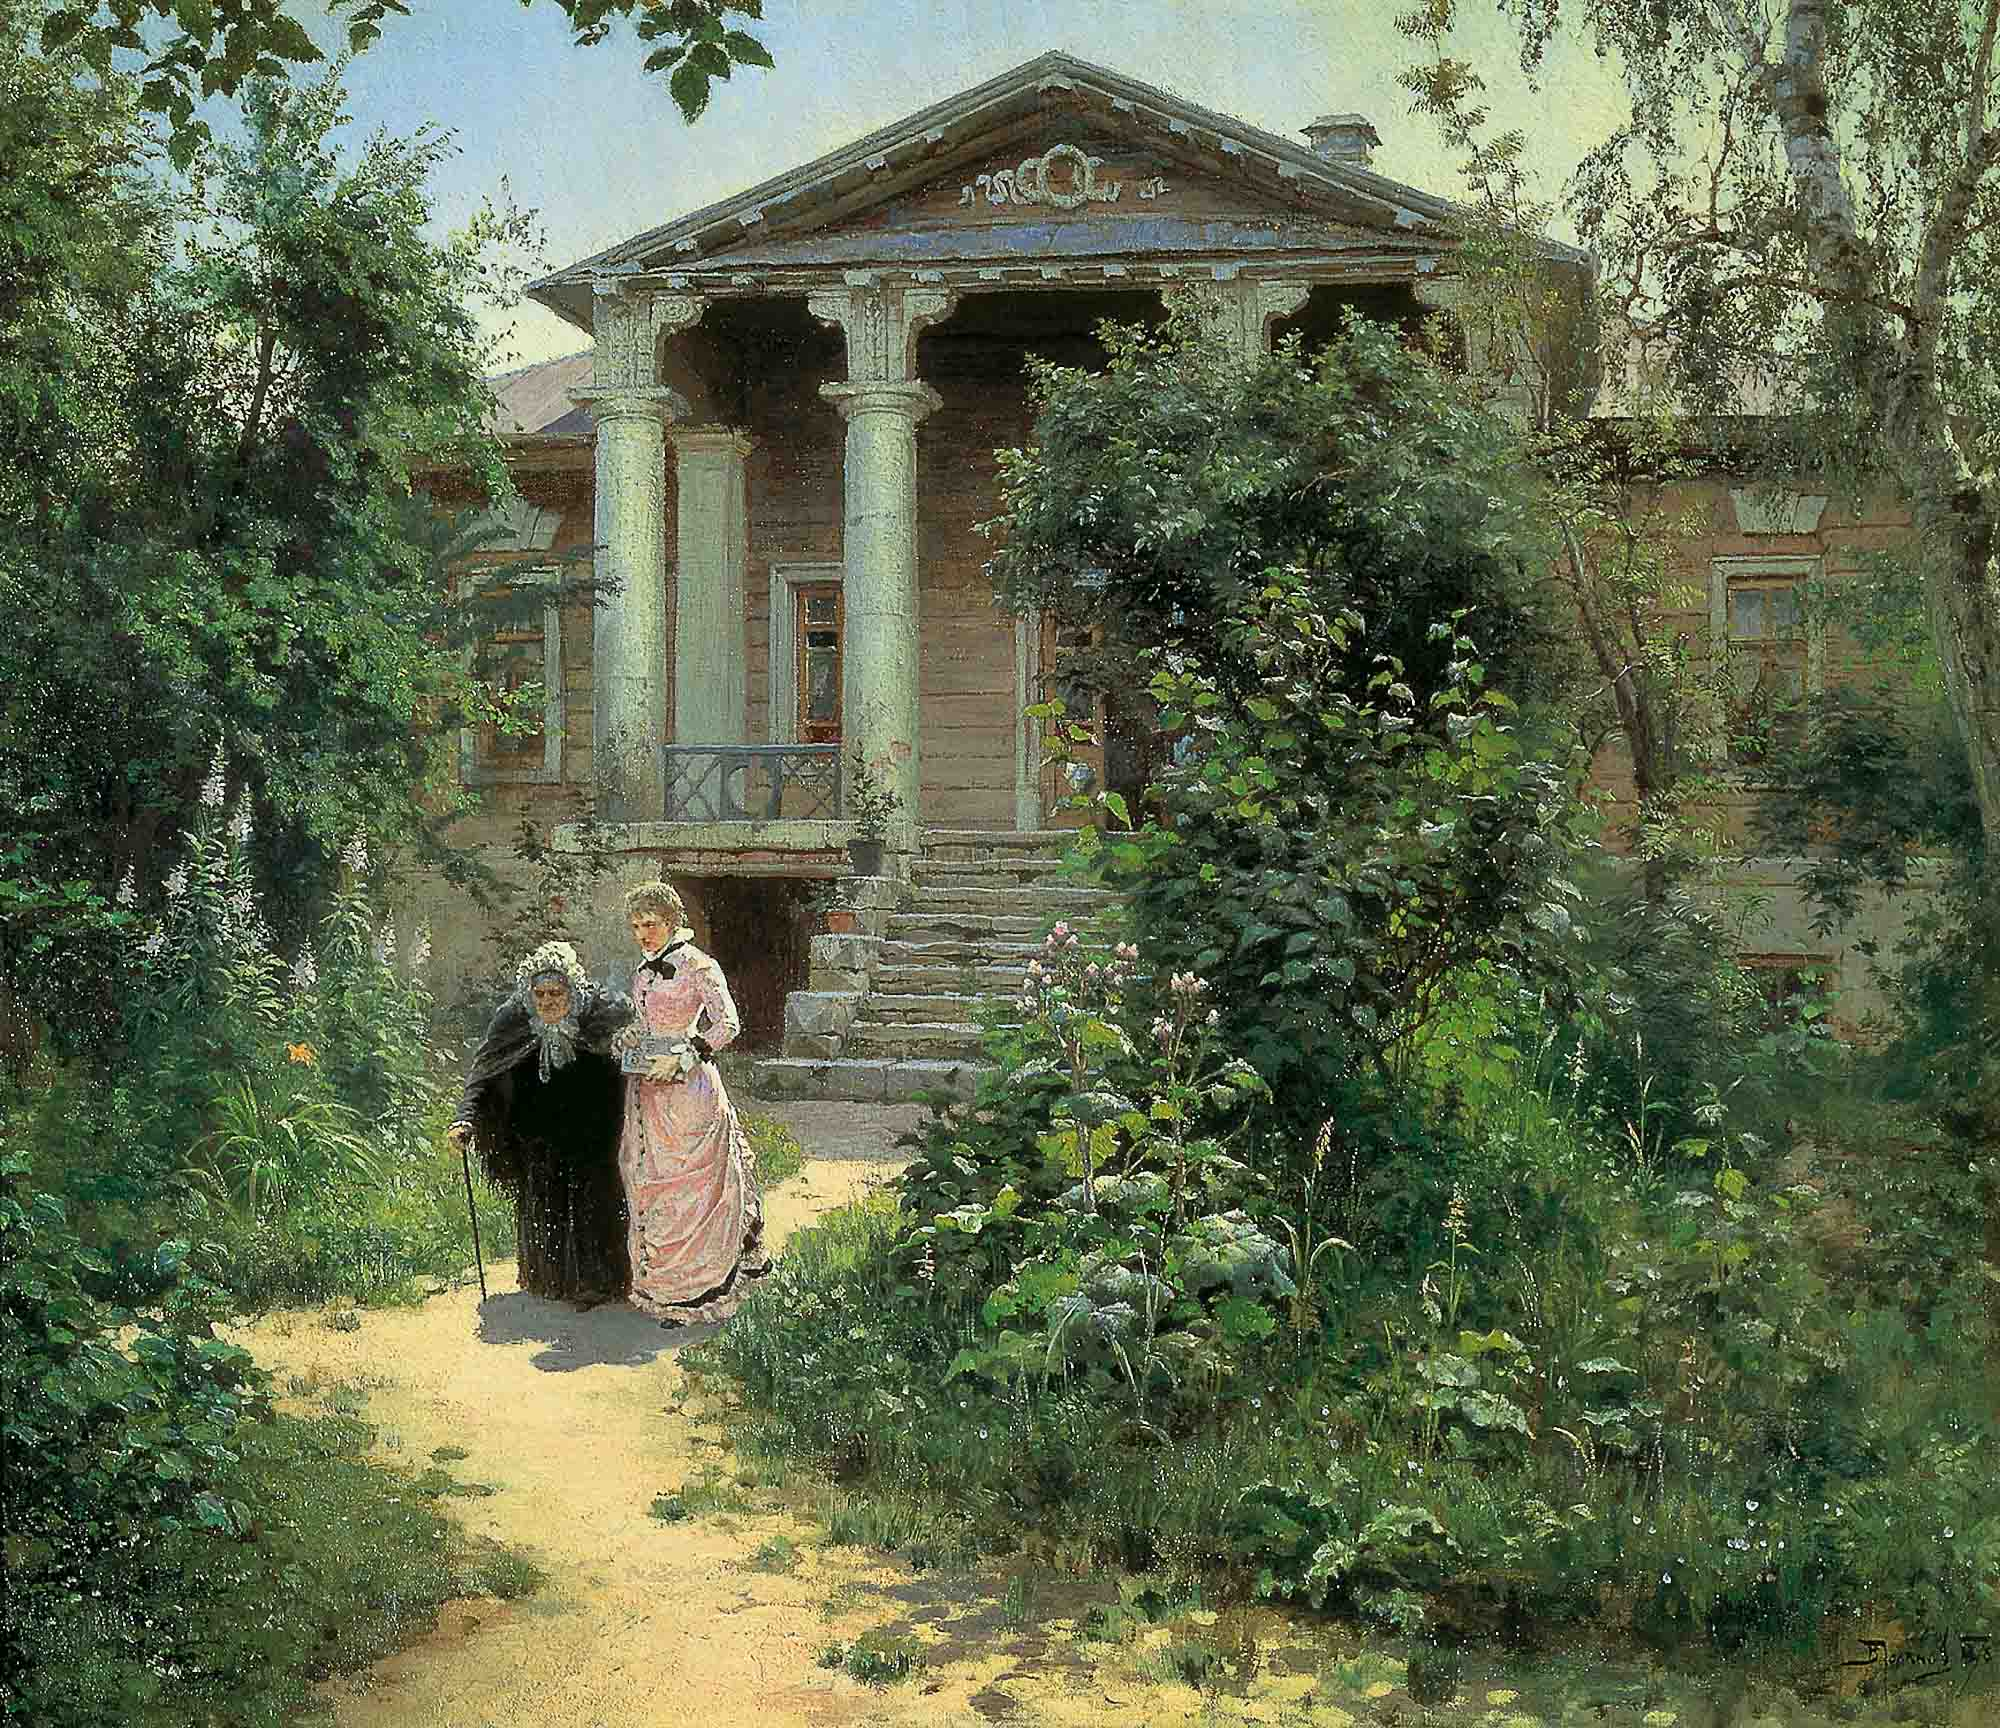 Vasily Polenov - Grandmother's garden, oil on canvas (1879)